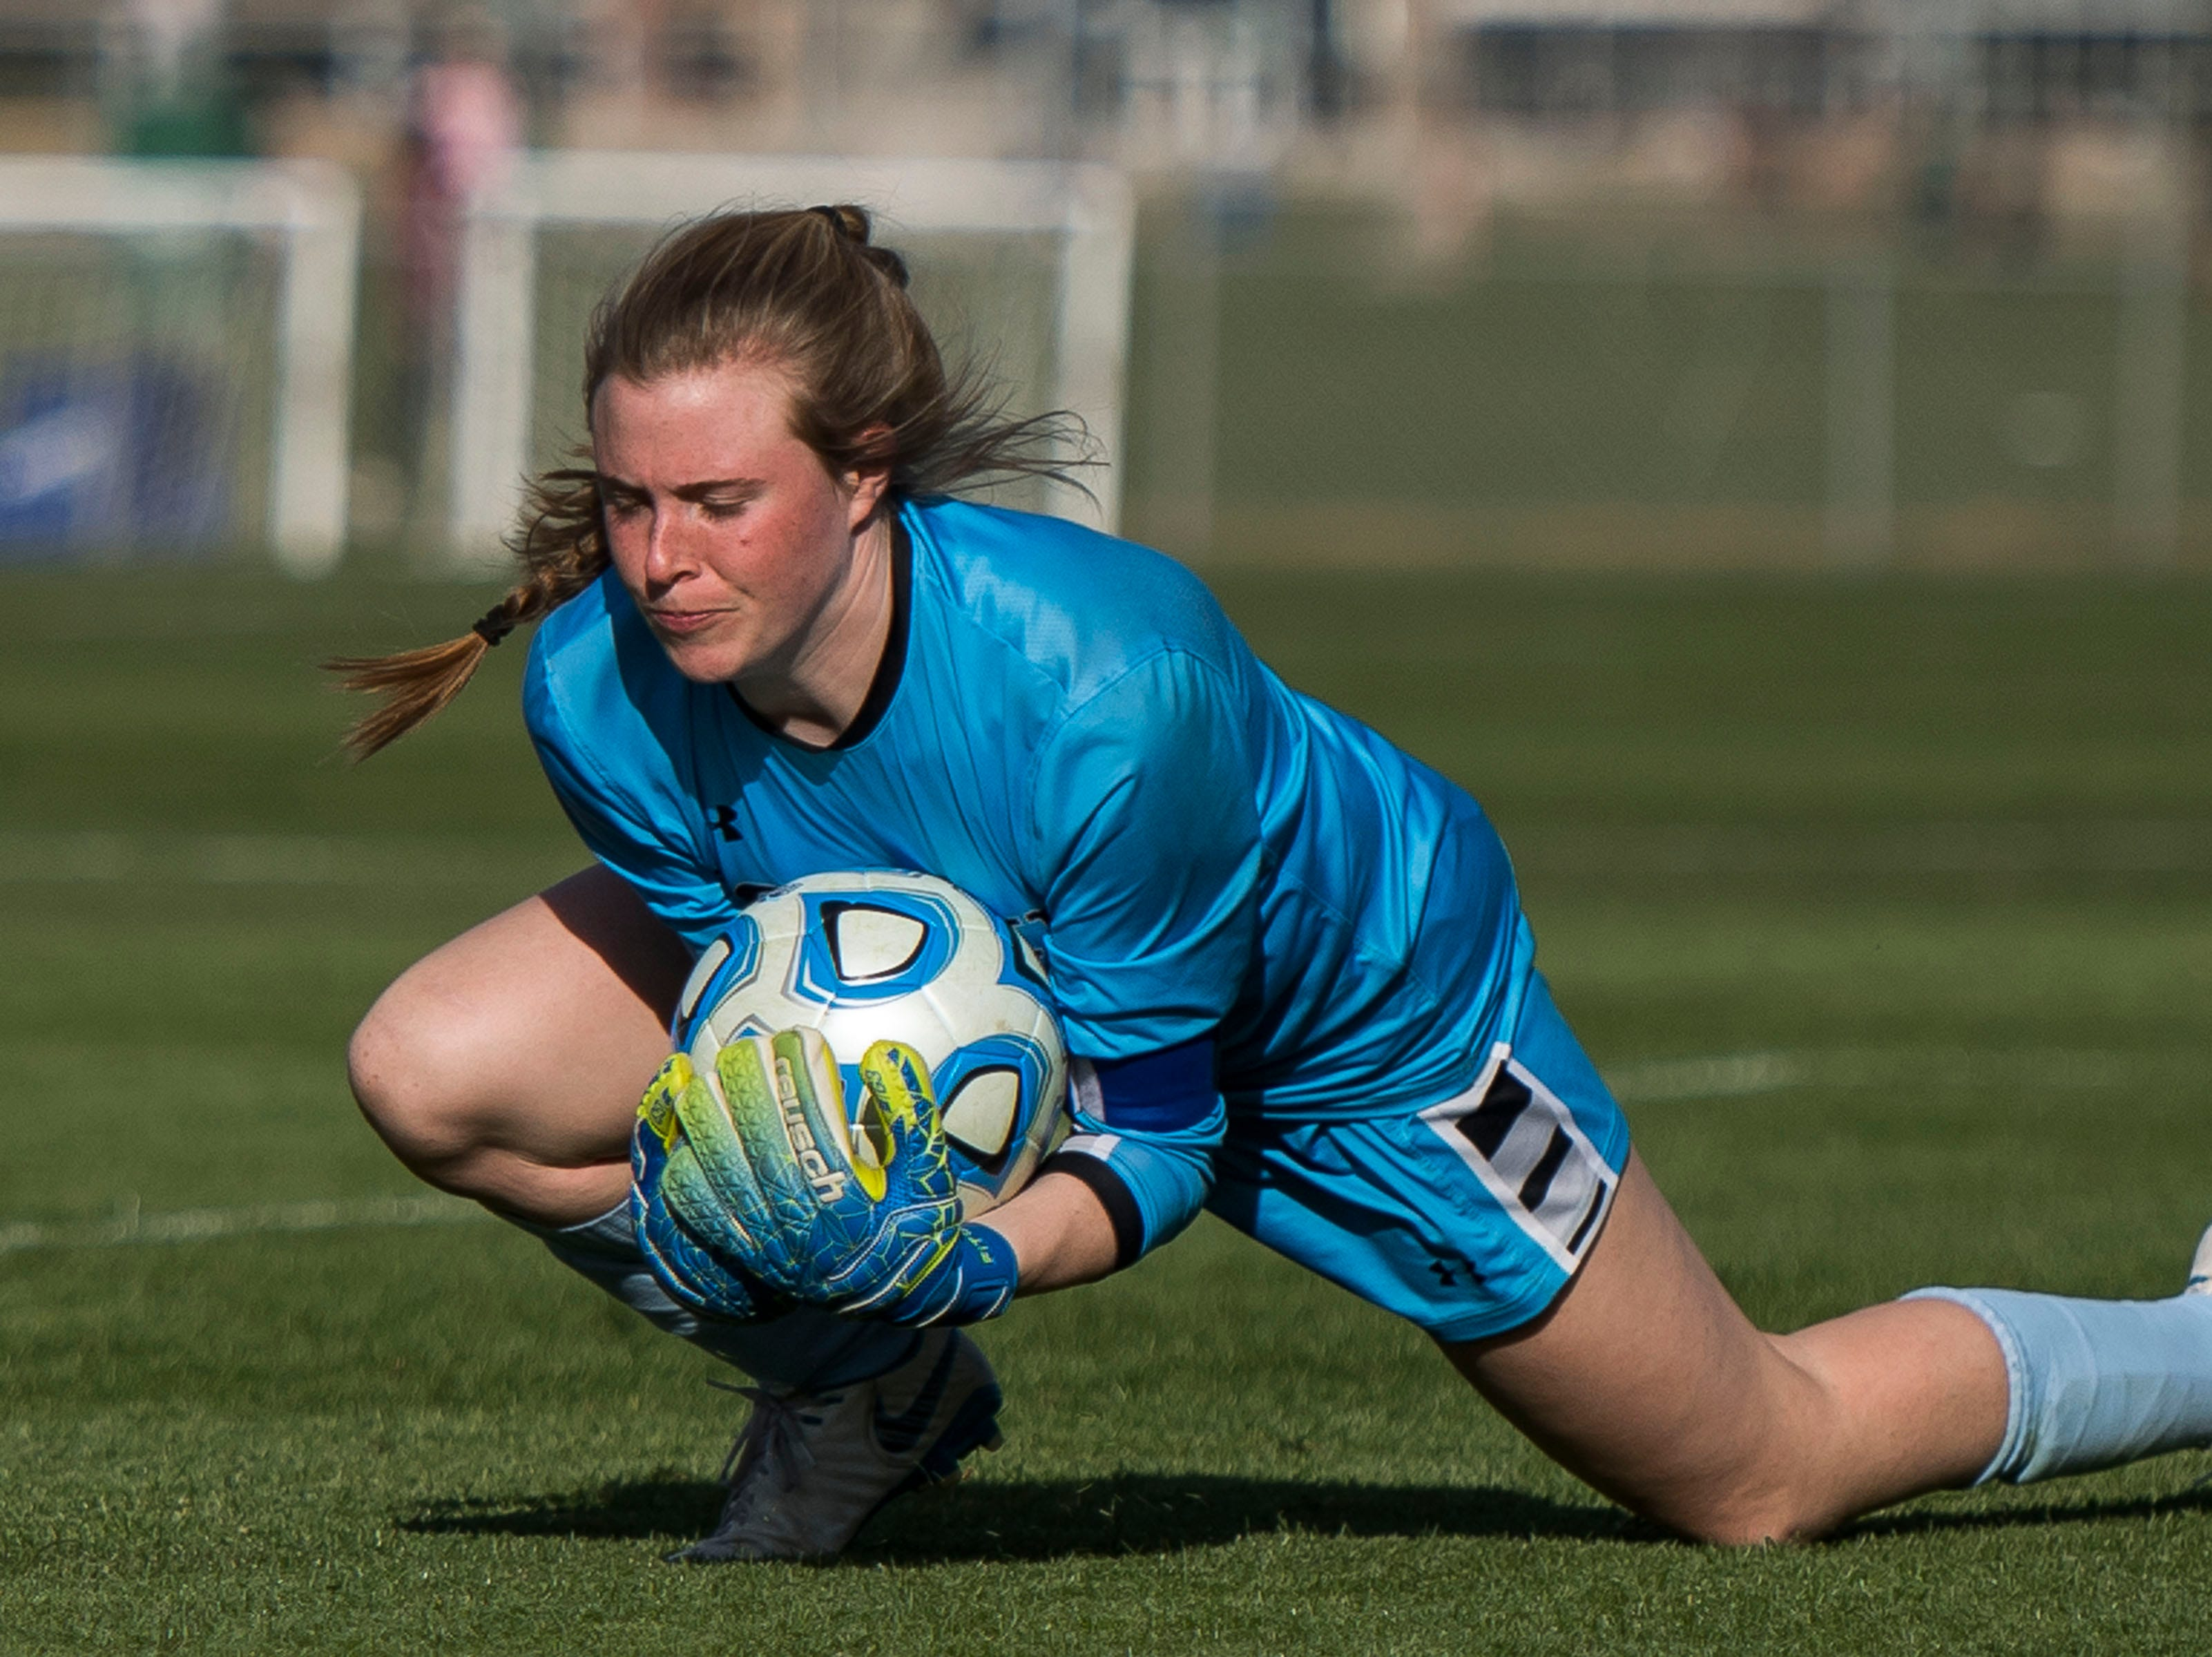 Fossil Ridge High School goalkeeper Emily Vangundy (1) dives on the ball during a game against Rocky Mountain High School on Friday, April 4, 2019, at Colorado State University's soccer field in Fort Collins, Colo.